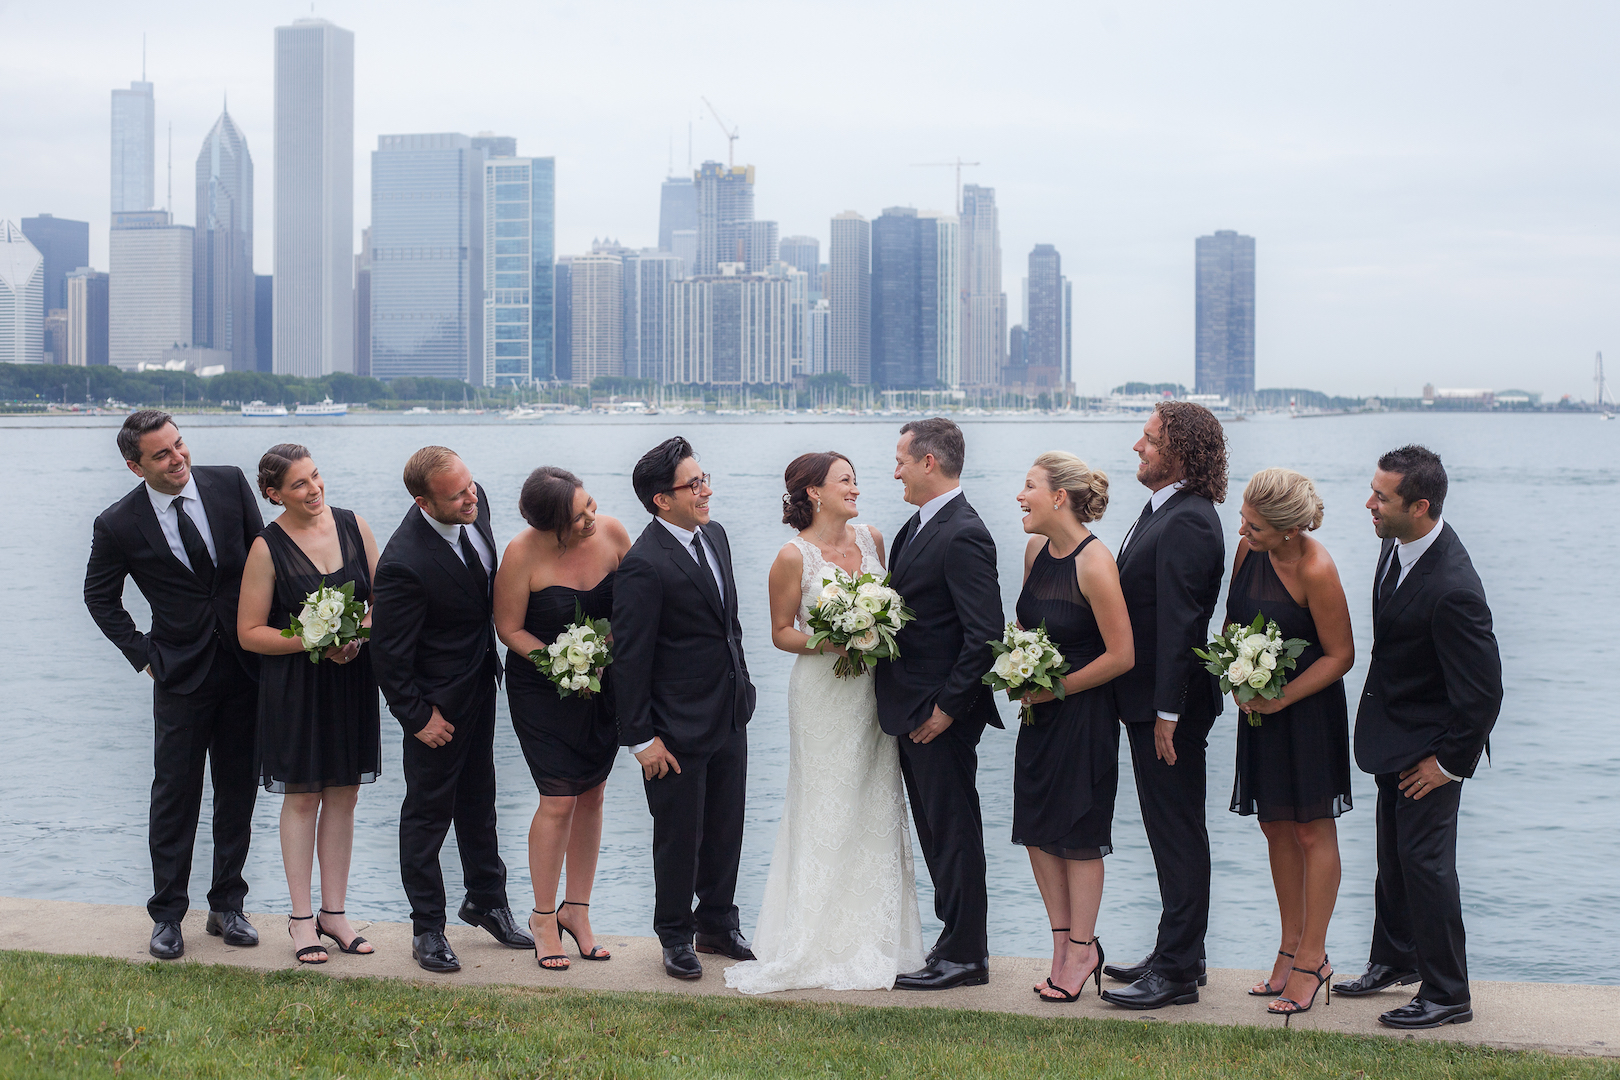 Brandon and Emily - Real Weddings by SuitShop